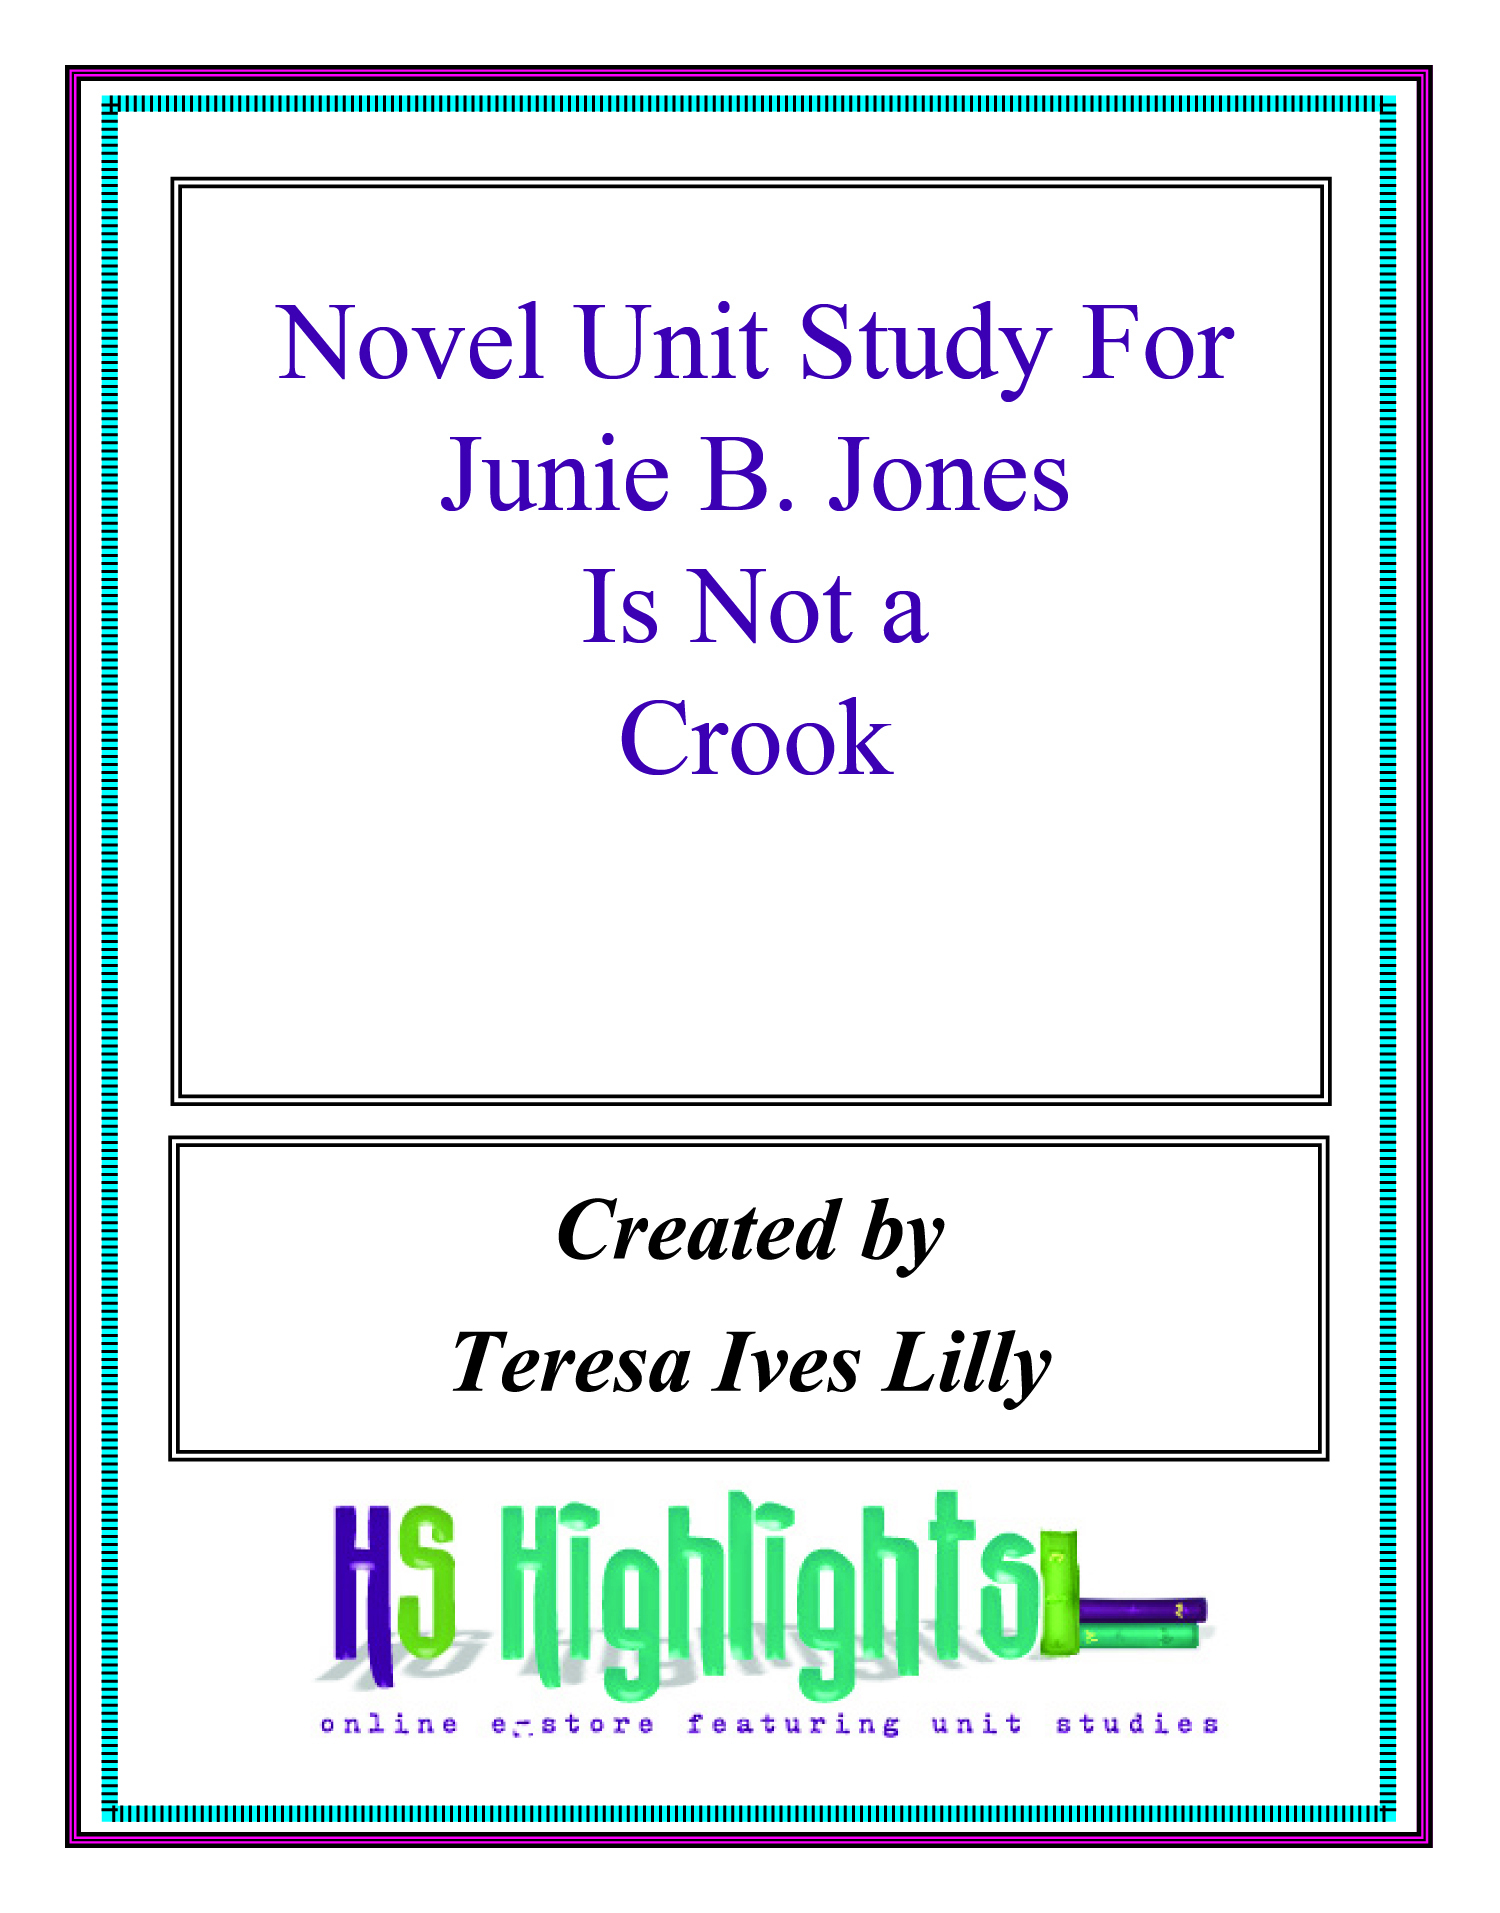 Novel Unit Study For Junie B. Jones is Not a Crook